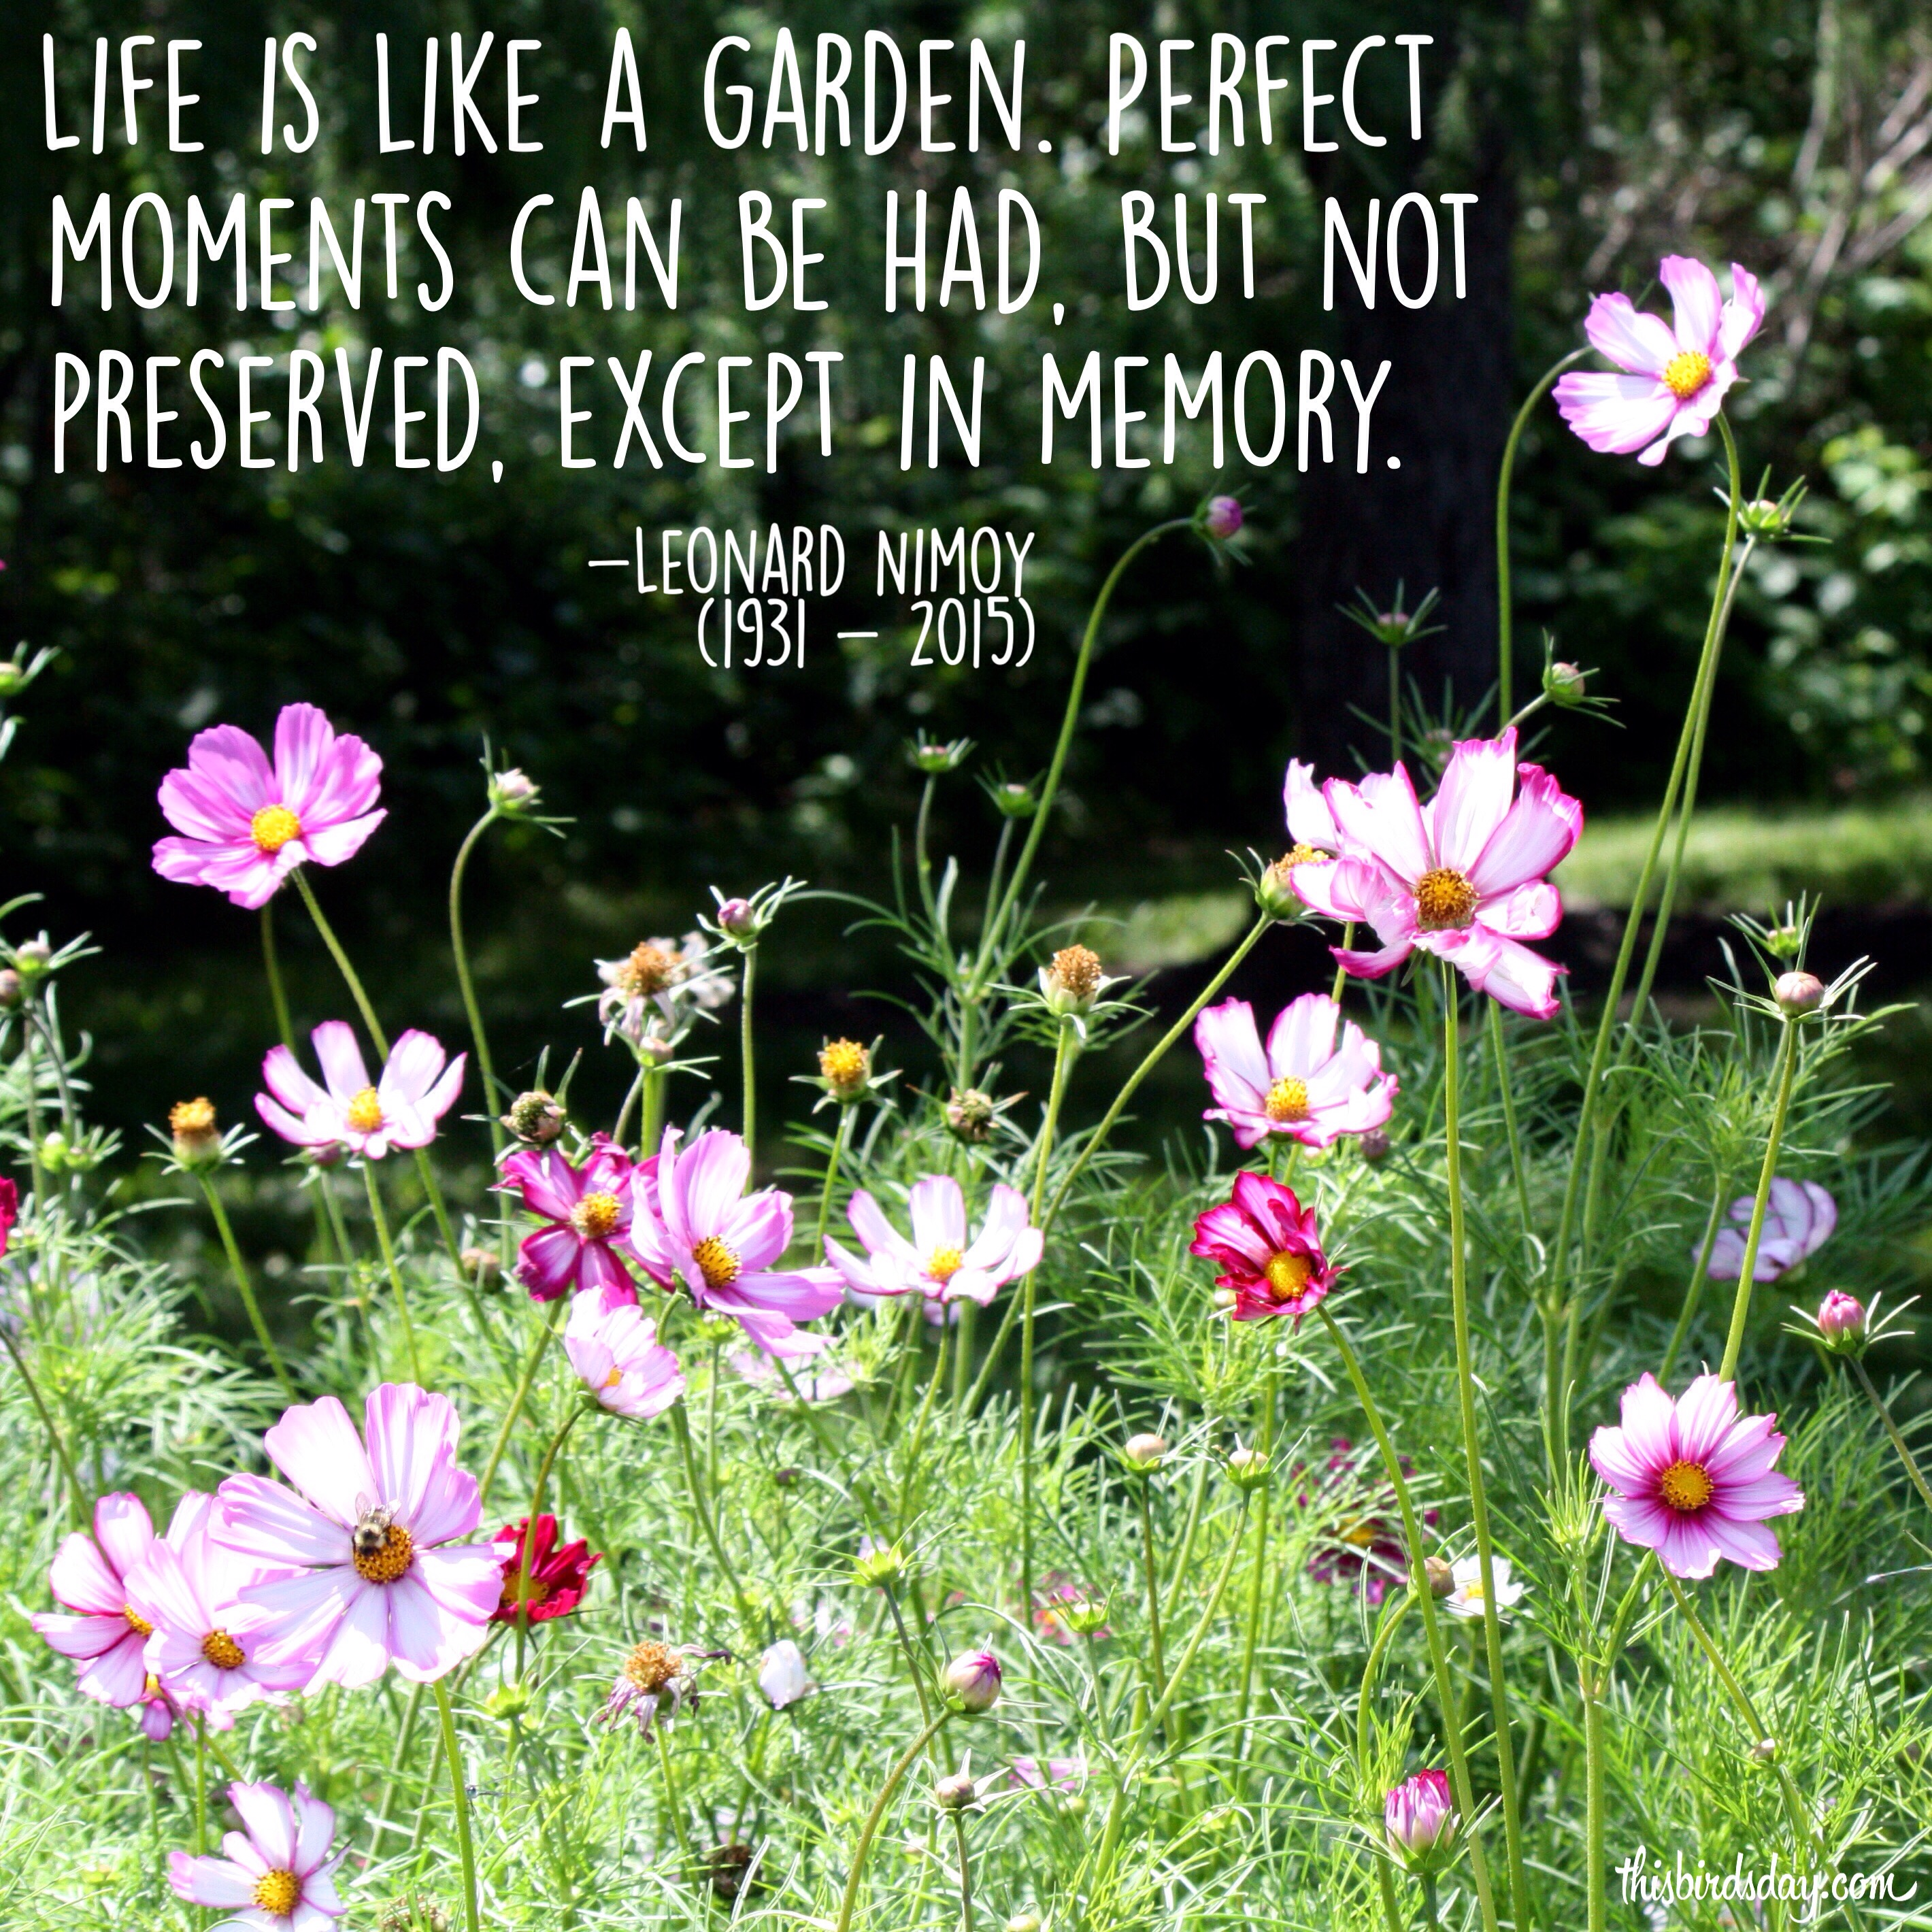 """""""Life is like a garden. Perfect moments can be had, but not preserved, except in memory."""" Leonard Nimoy Photo copyright Sheri Landry"""